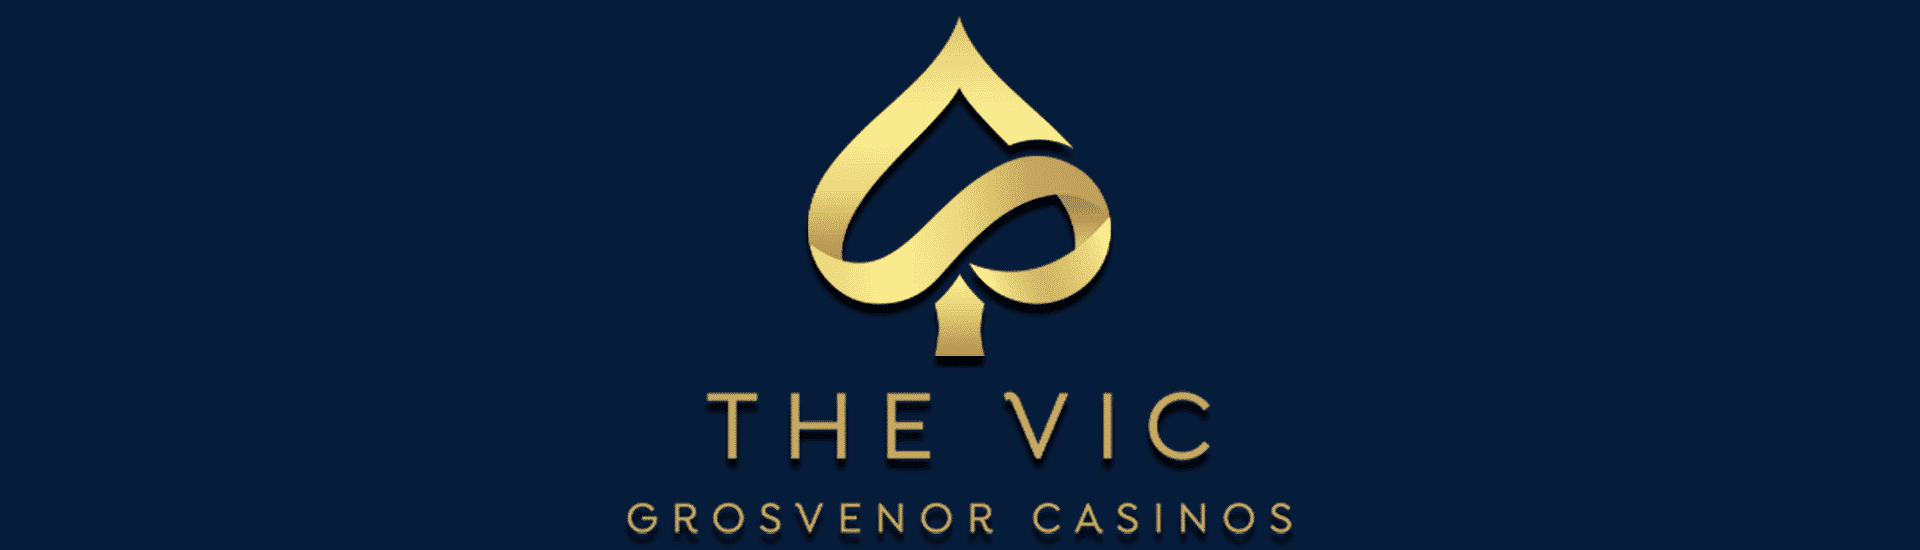 The Vic Featured Image